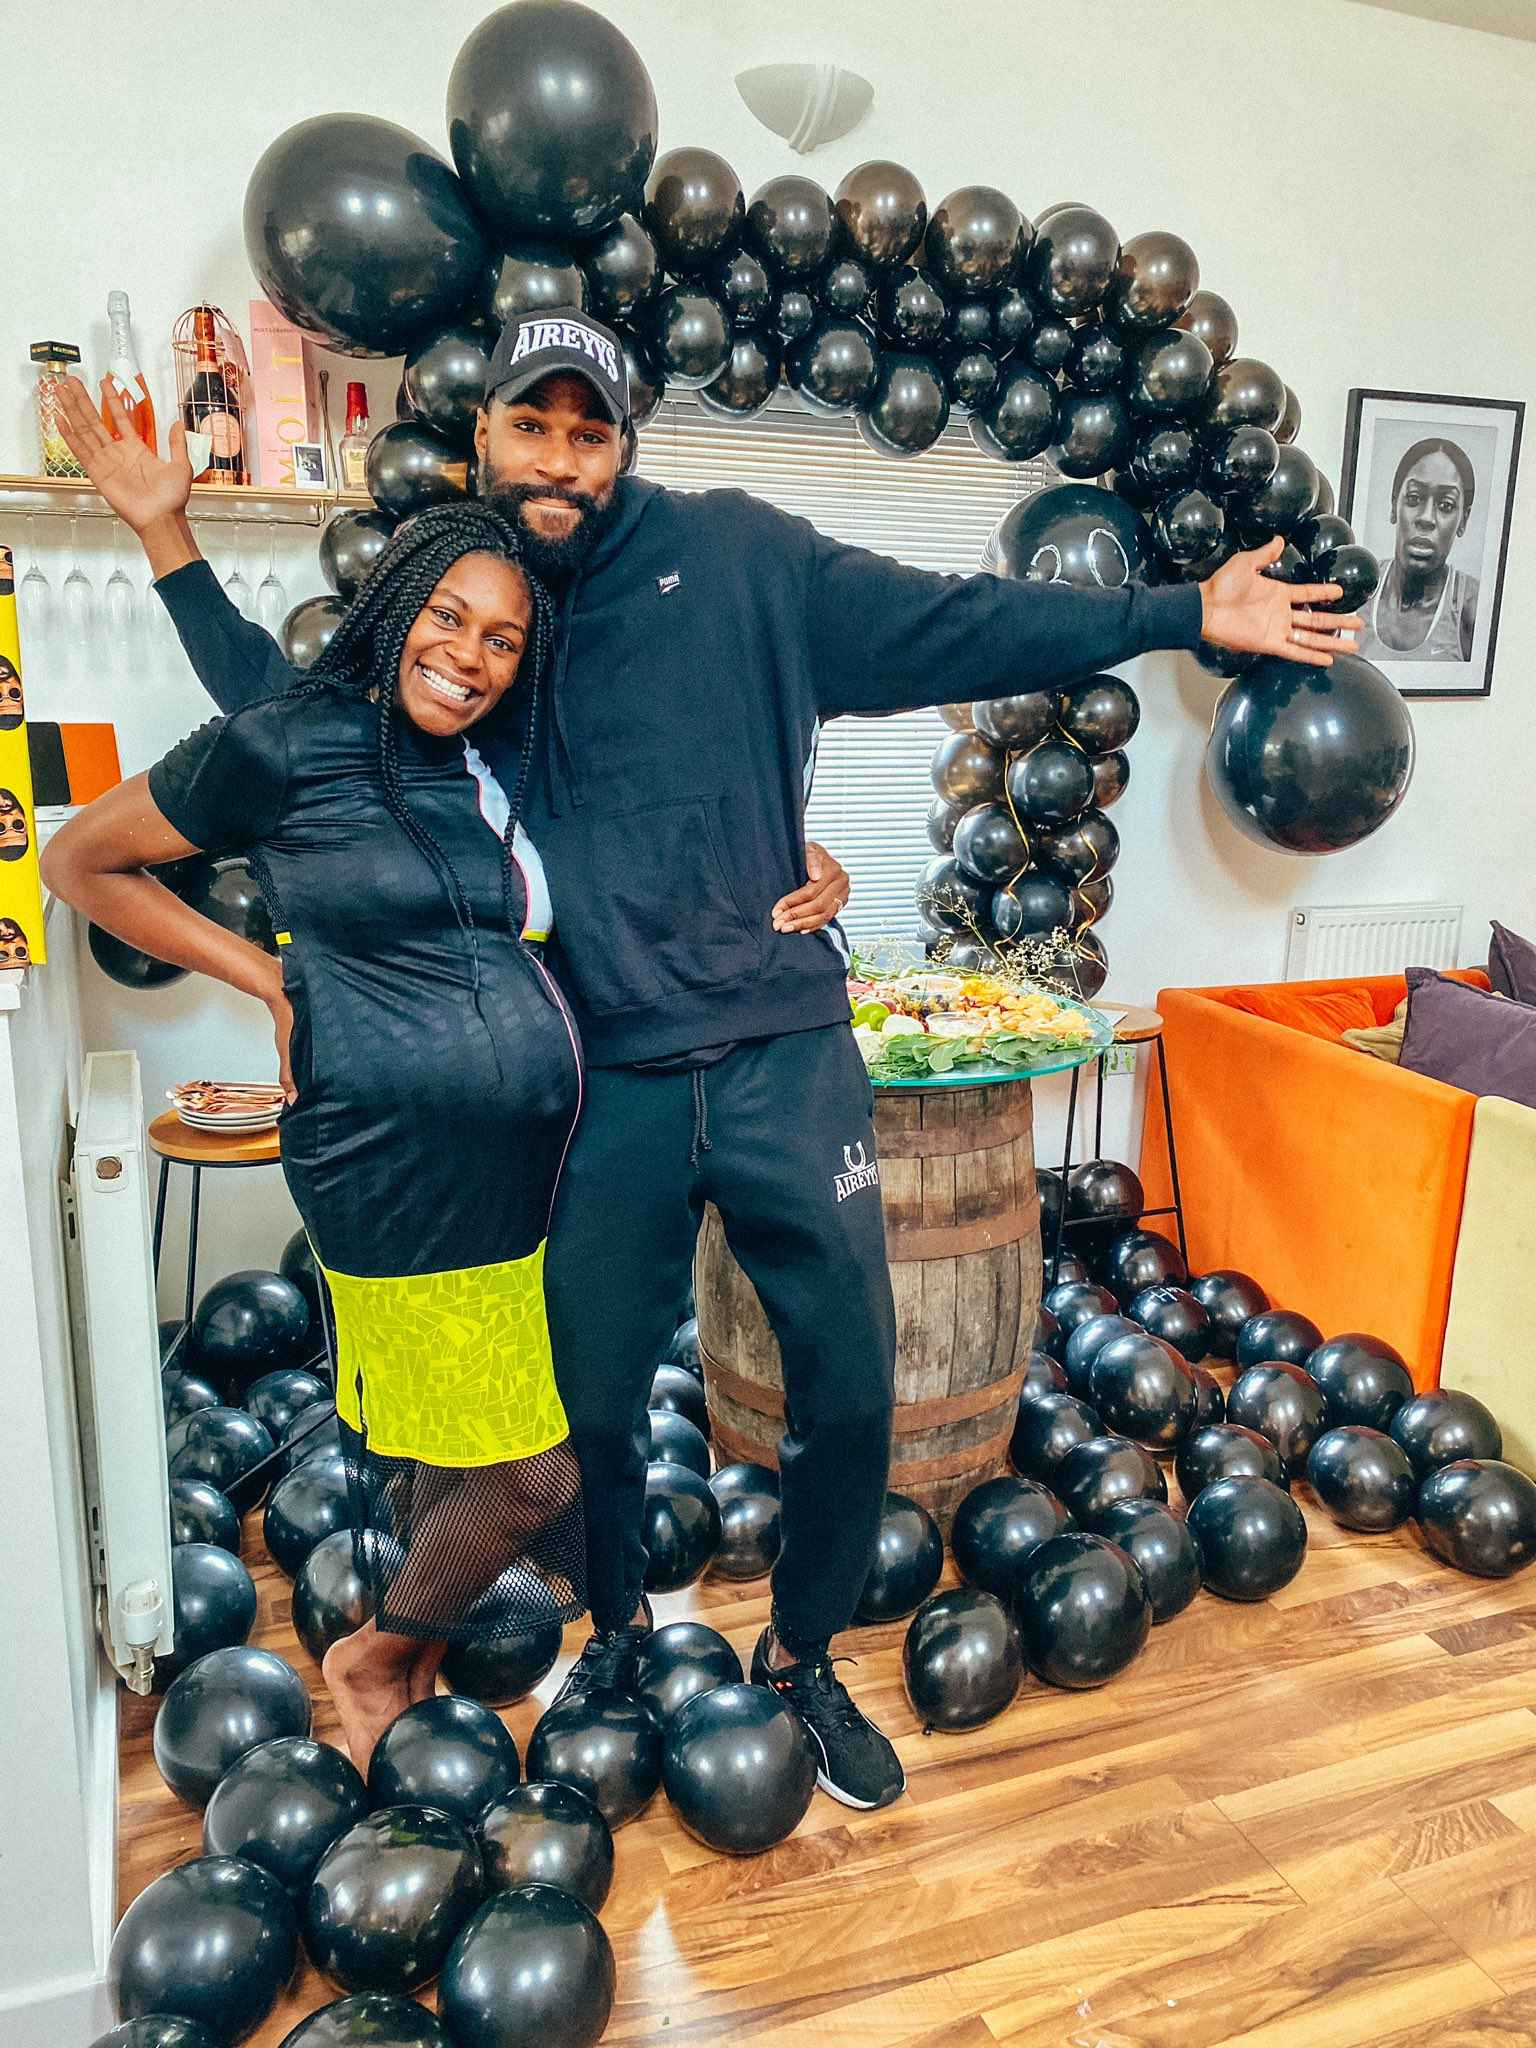 Mike and his wife expecting their baby boy after throwing baby shower party